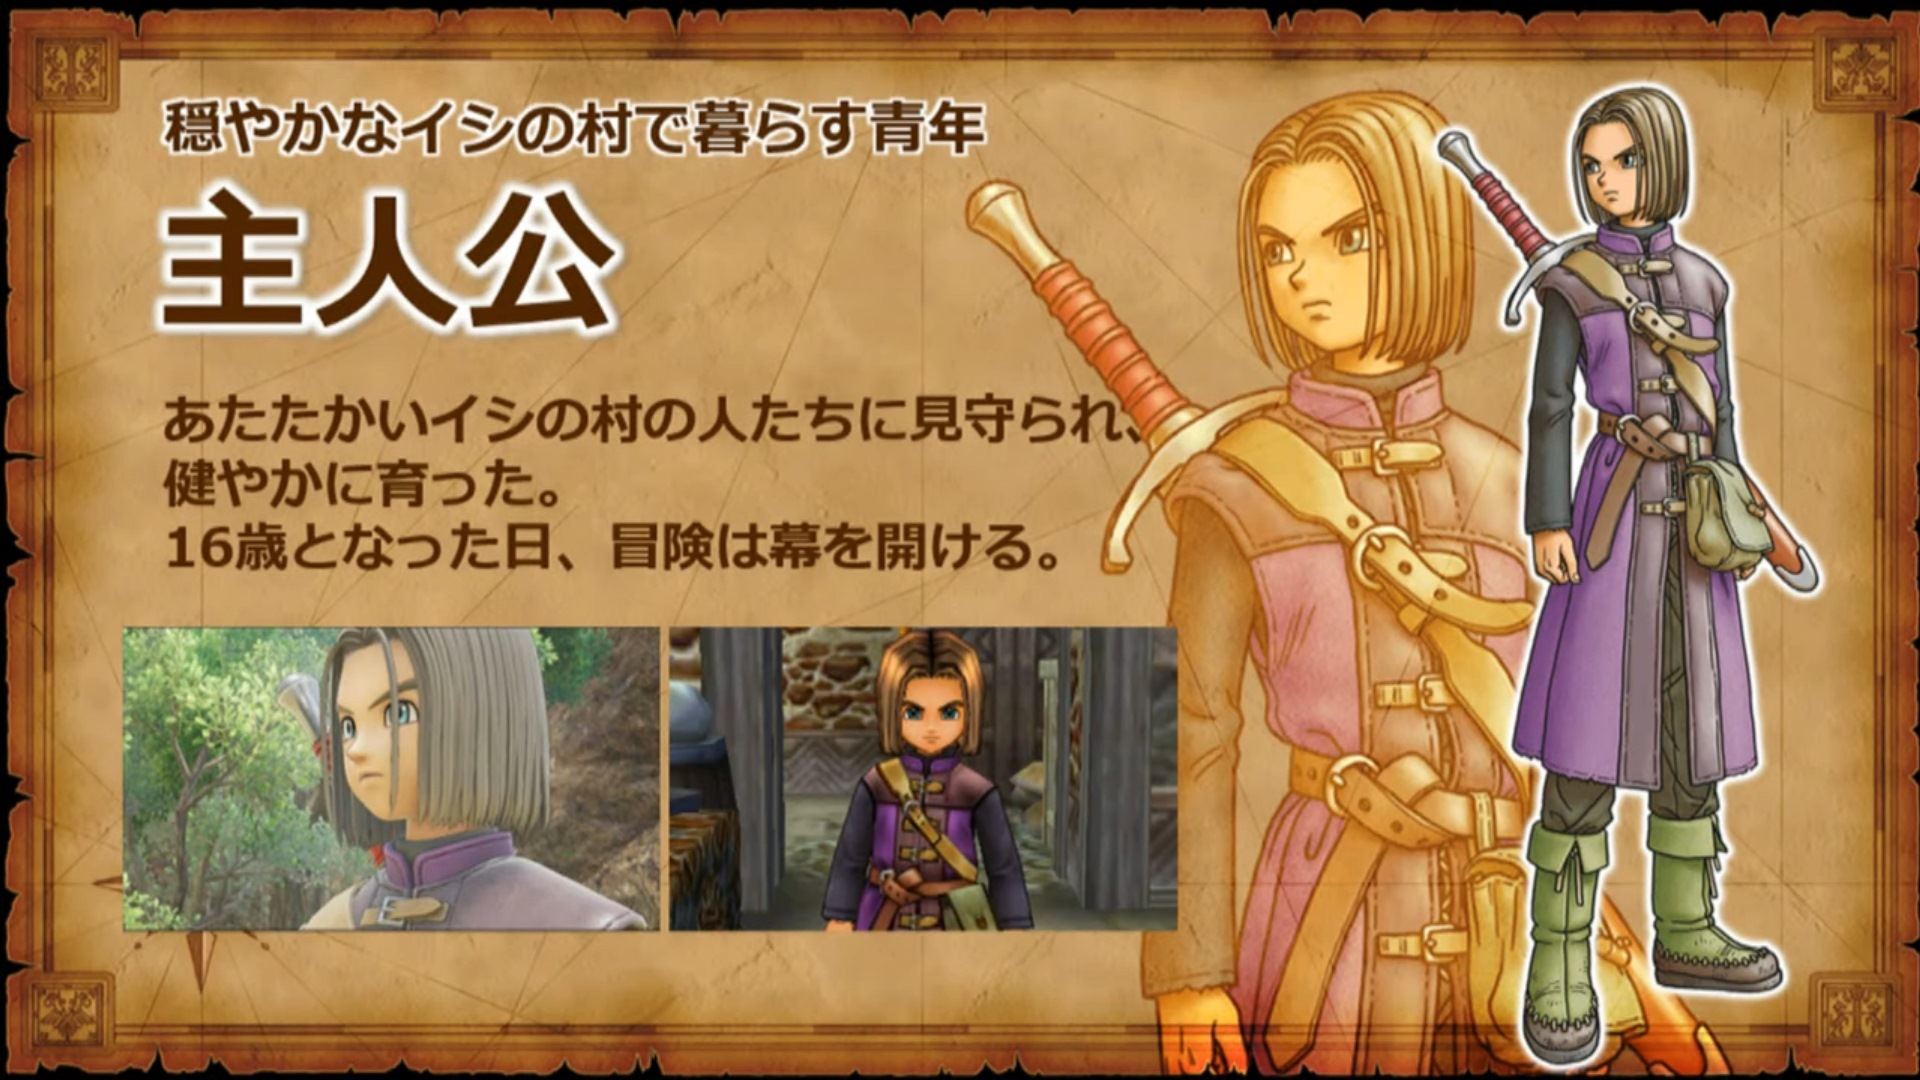 Dragon Quest Xi New Images Nintendo Everything